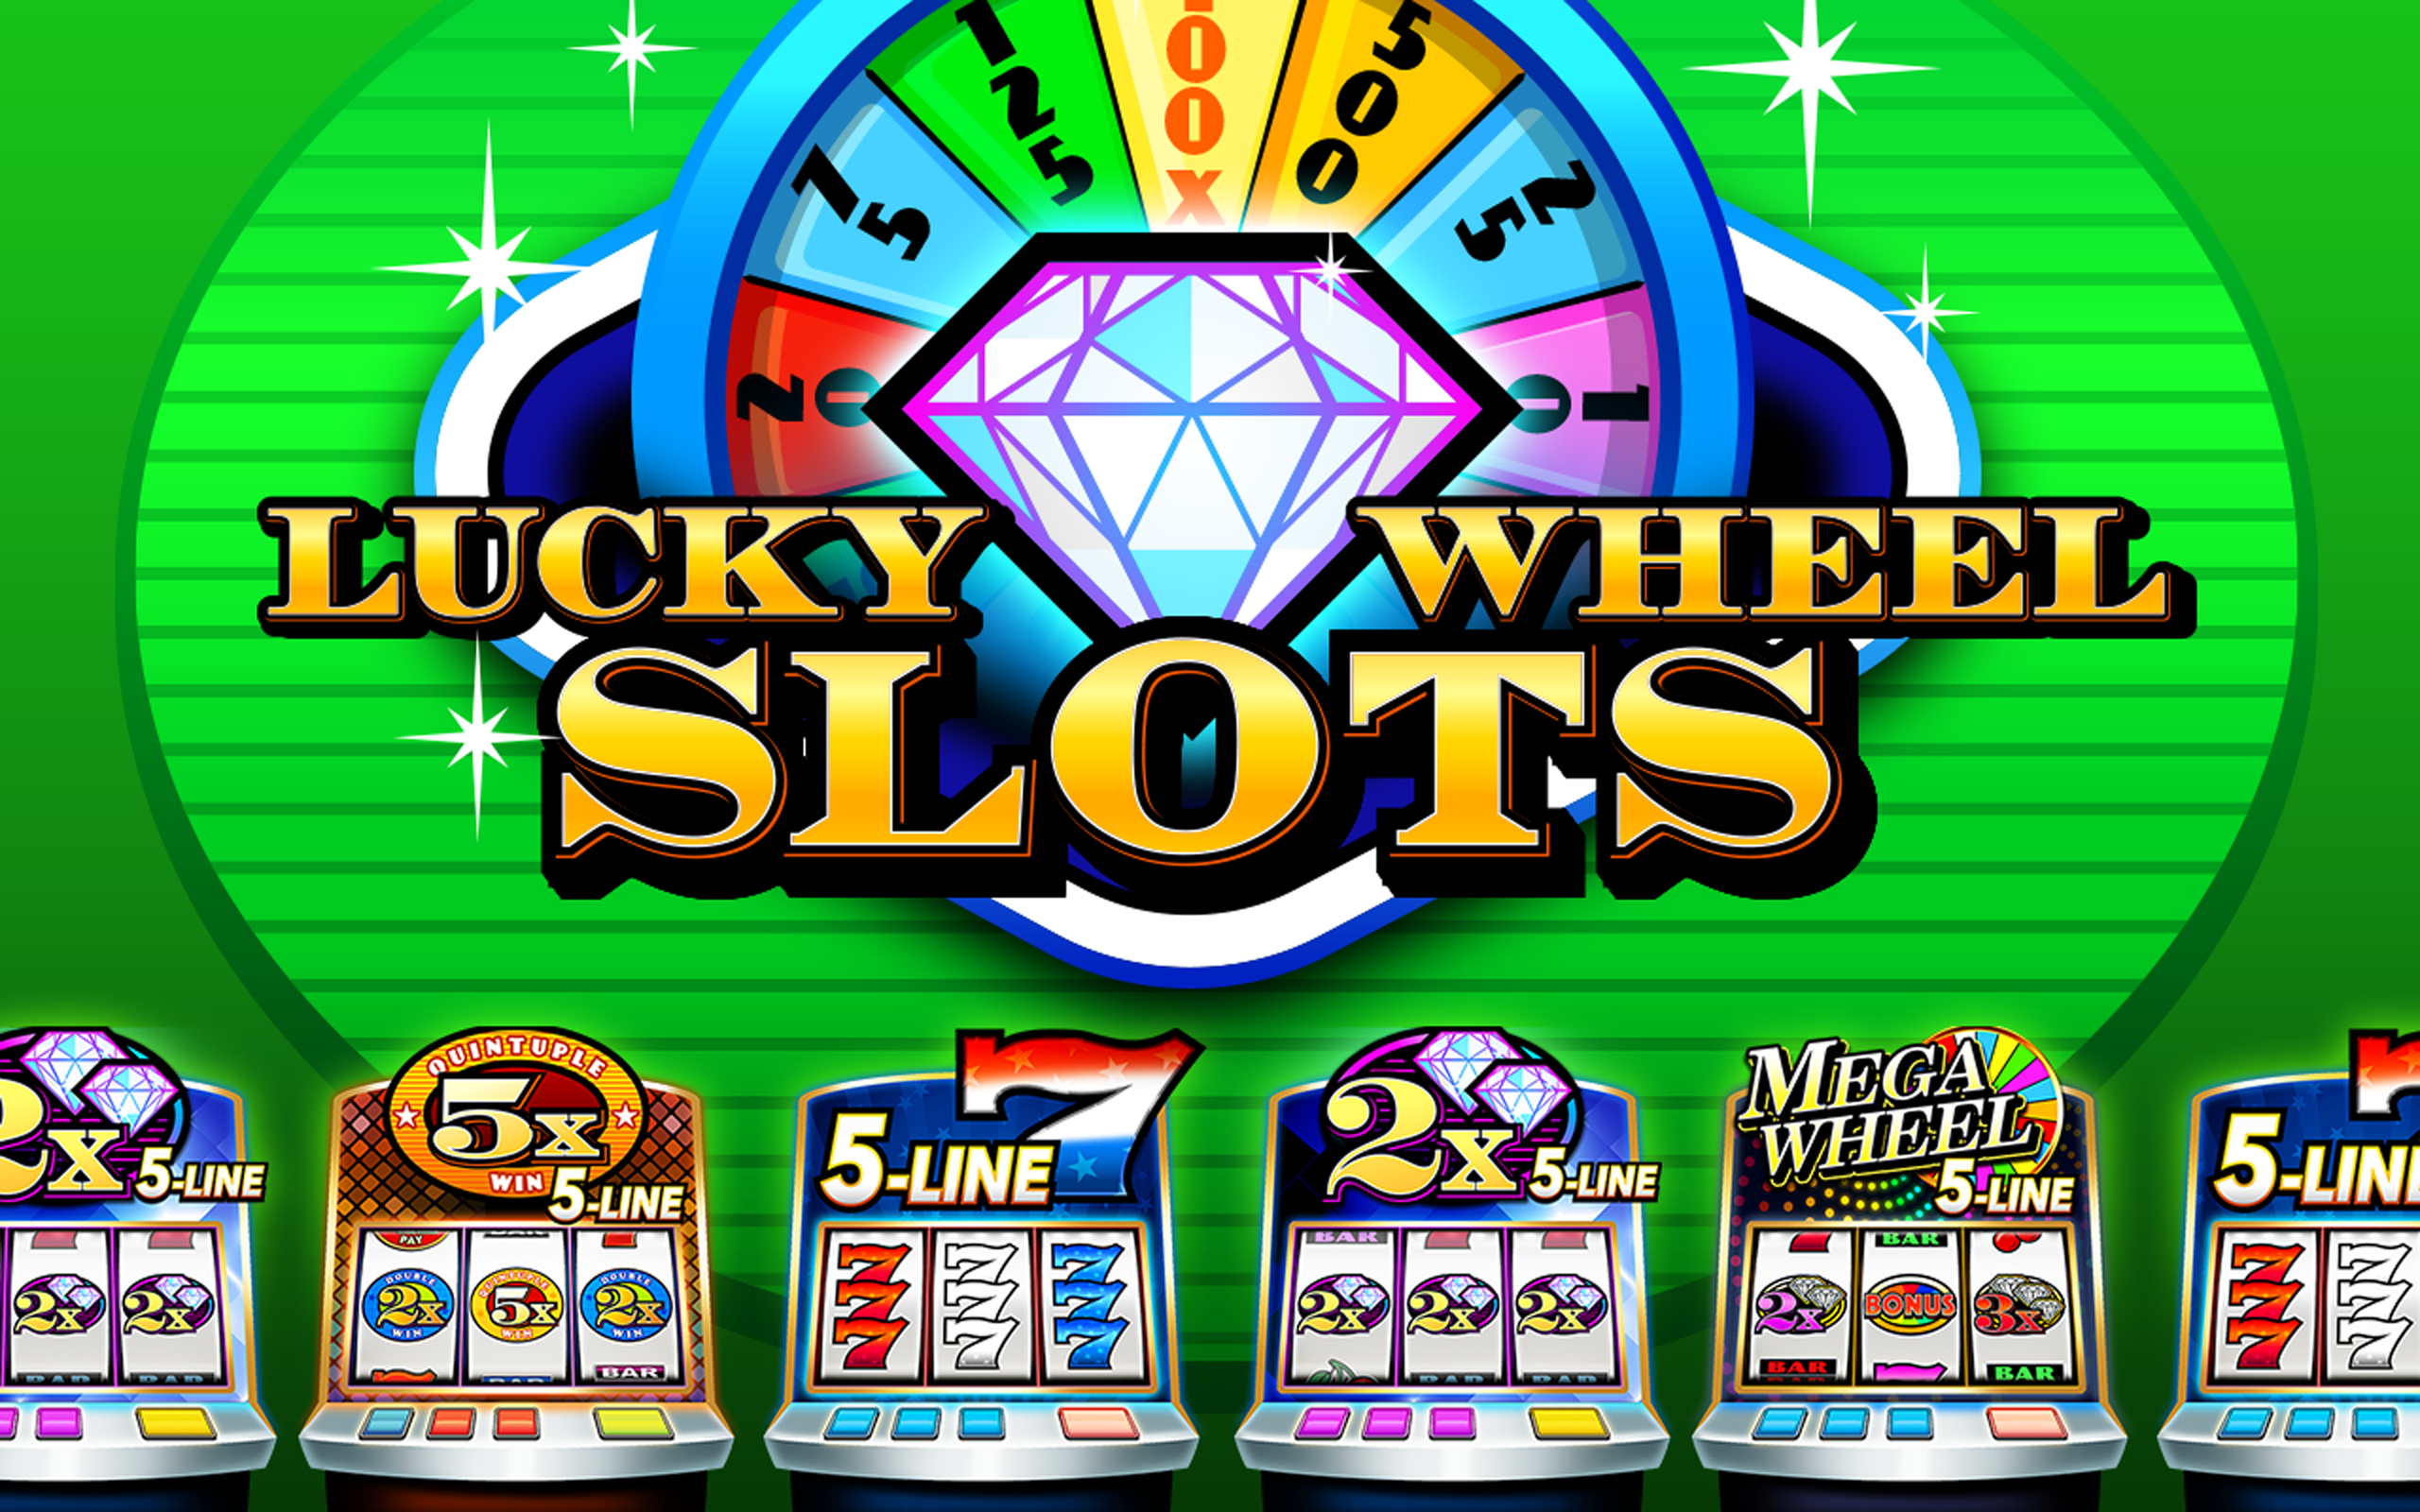 Free Online Slots With Bonus Games